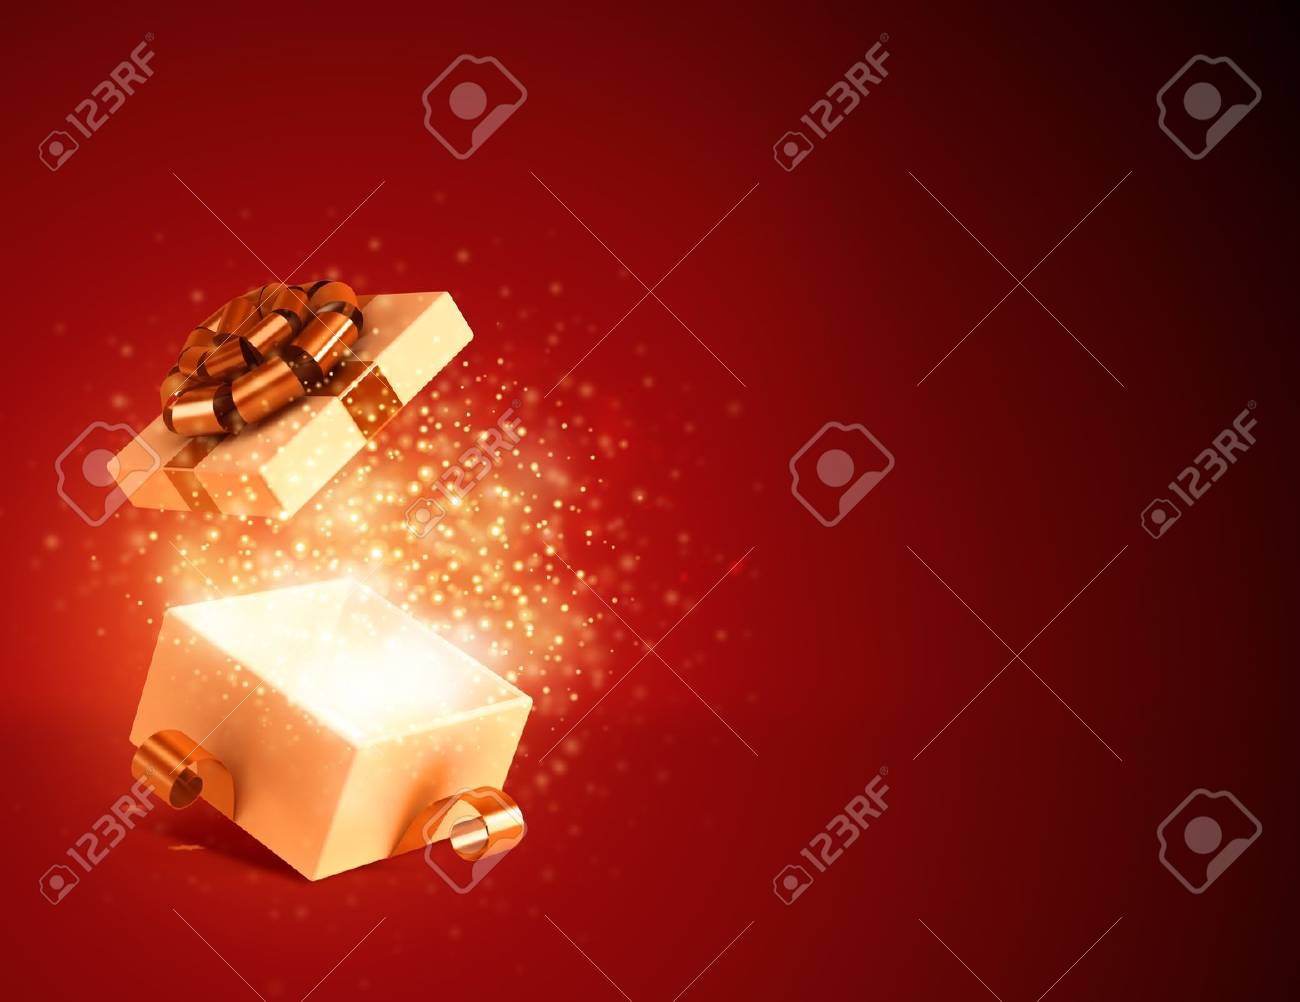 Gift box open and fireworks background Stock Photo - 15936439